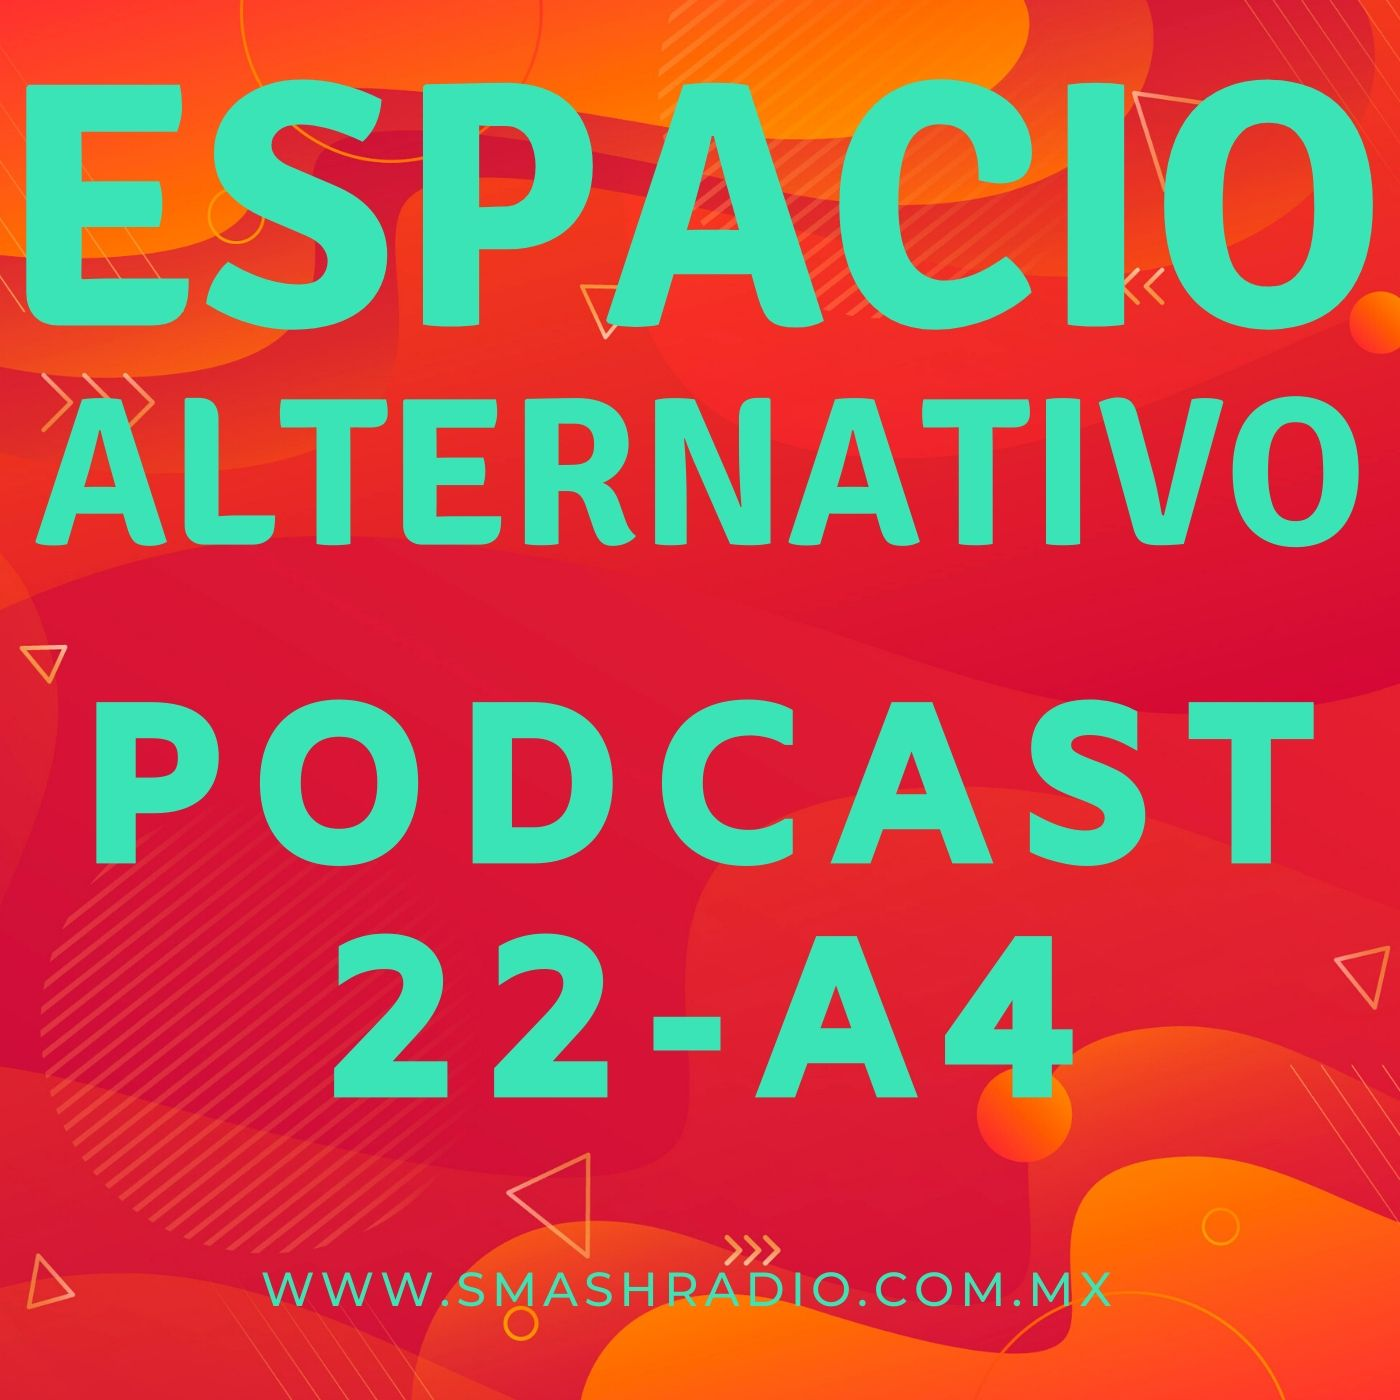 Espacio_Alternativo_Podcast_22-a4